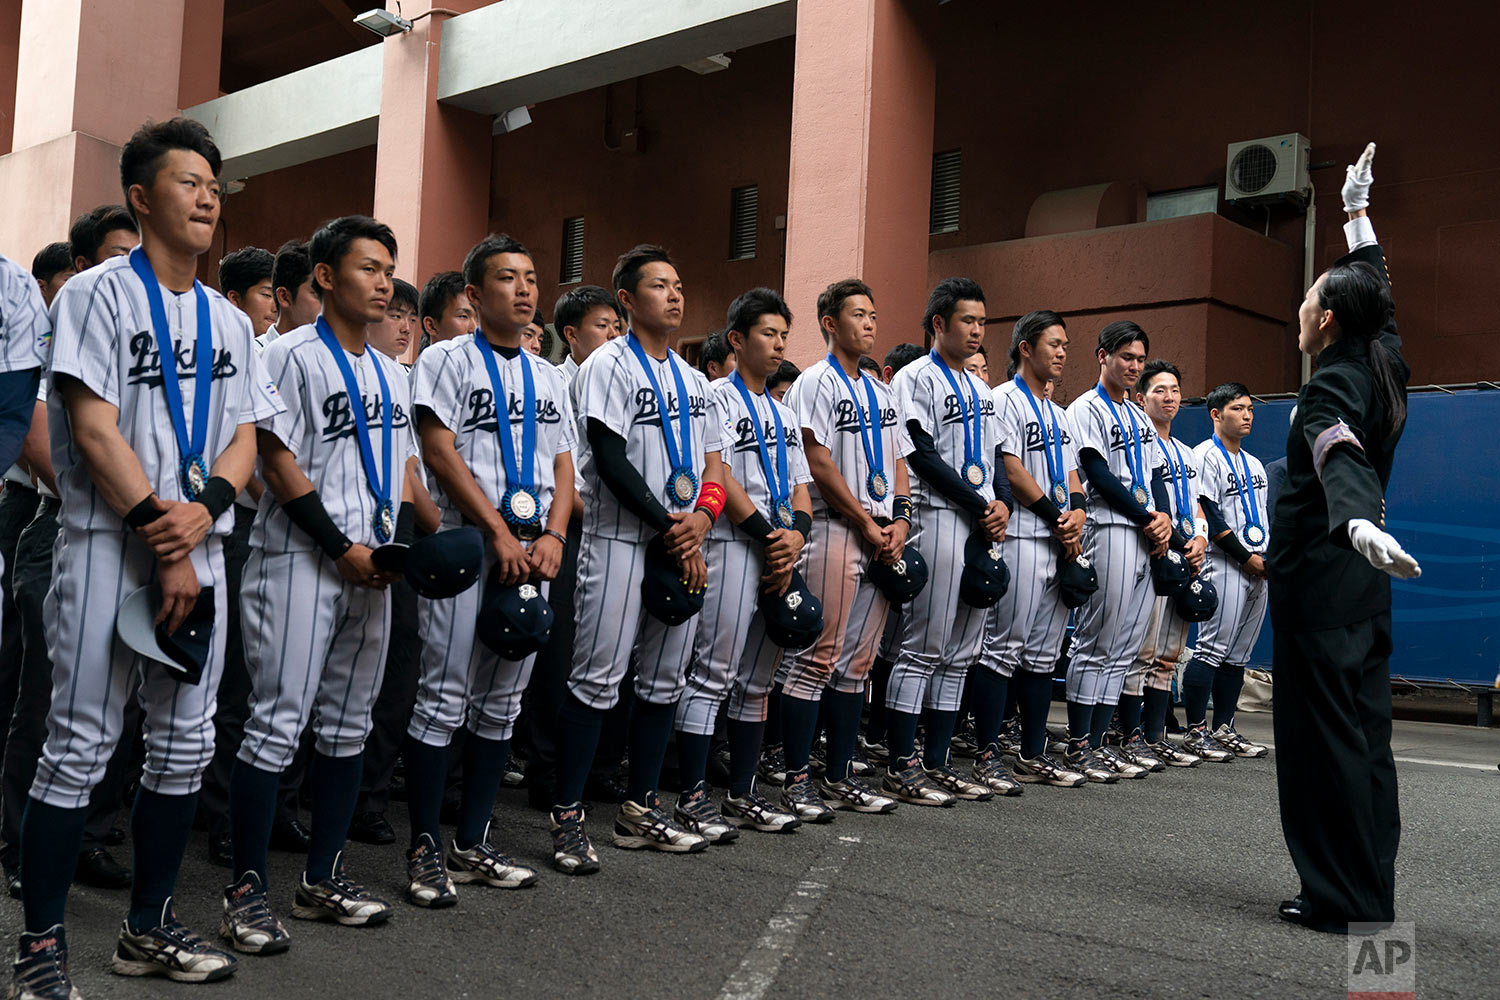 Bukkyo University cheerleading squad leader, Yamaguchi Karin, right, leads the school song in front of the school's baseball players in Tokyo, June 17, 2019, after the team placed second in the 68th All-Japan University Baseball Championship. (AP Photo/Jae C. Hong)